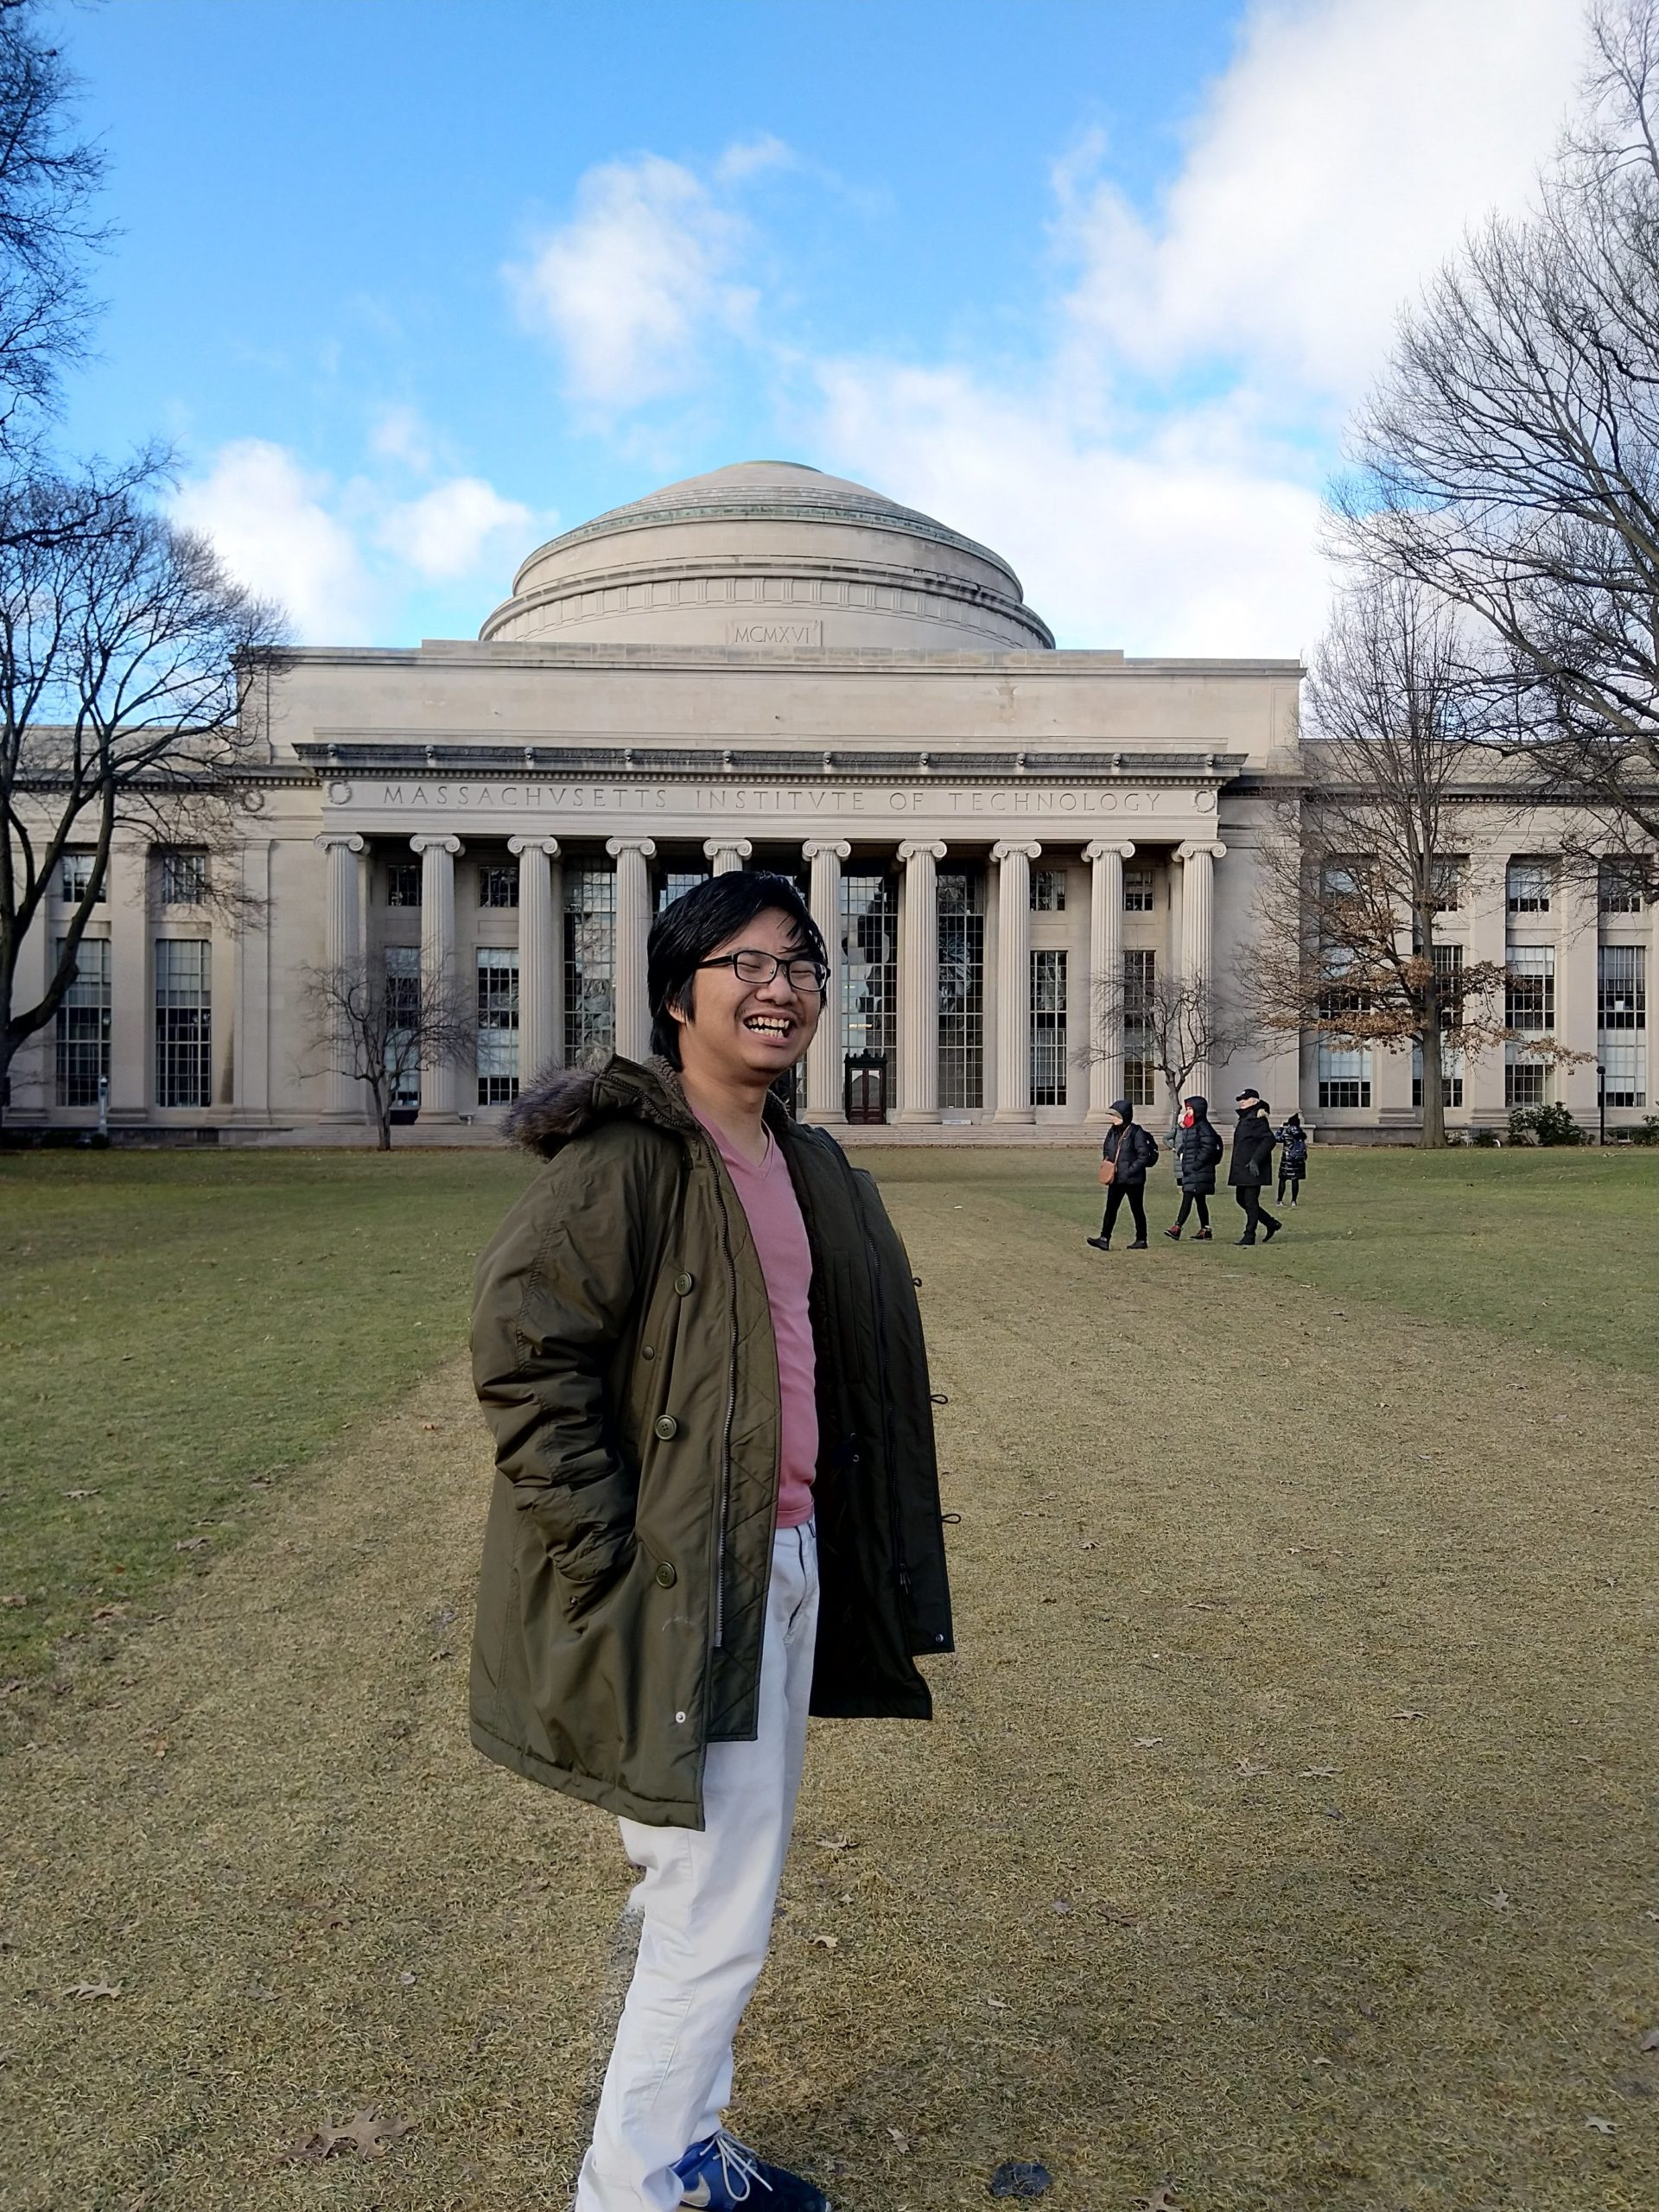 me, smiling, standing in front of the mit's dome